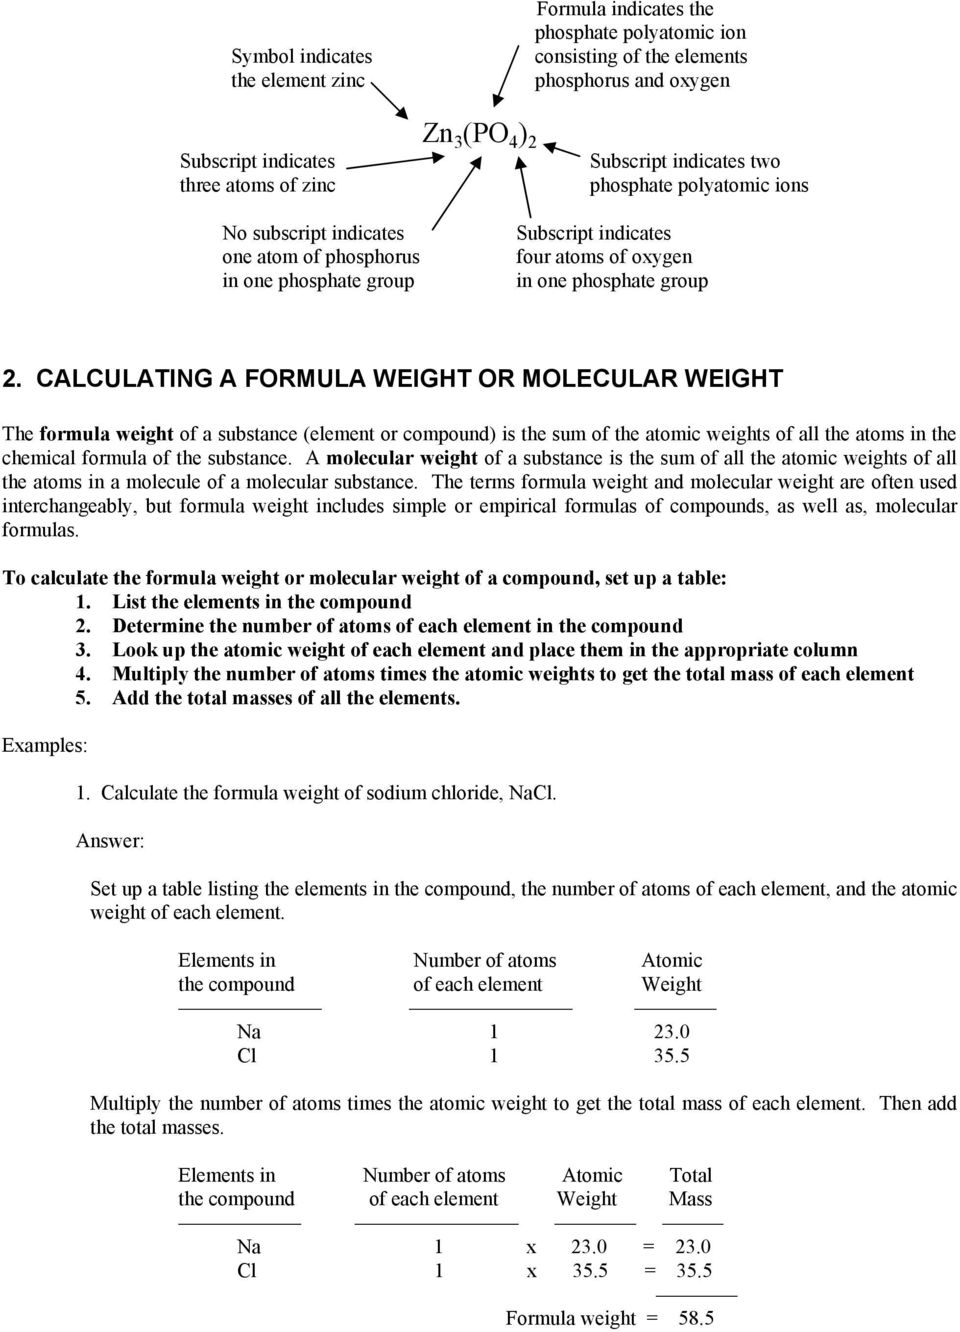 CALCULATING A FORMULA WEIGHT OR MOLECULAR WEIGHT The formula weight of a substance (element or compound) is the sum of the atomic weights of all the atoms in the chemical formula of the substance.